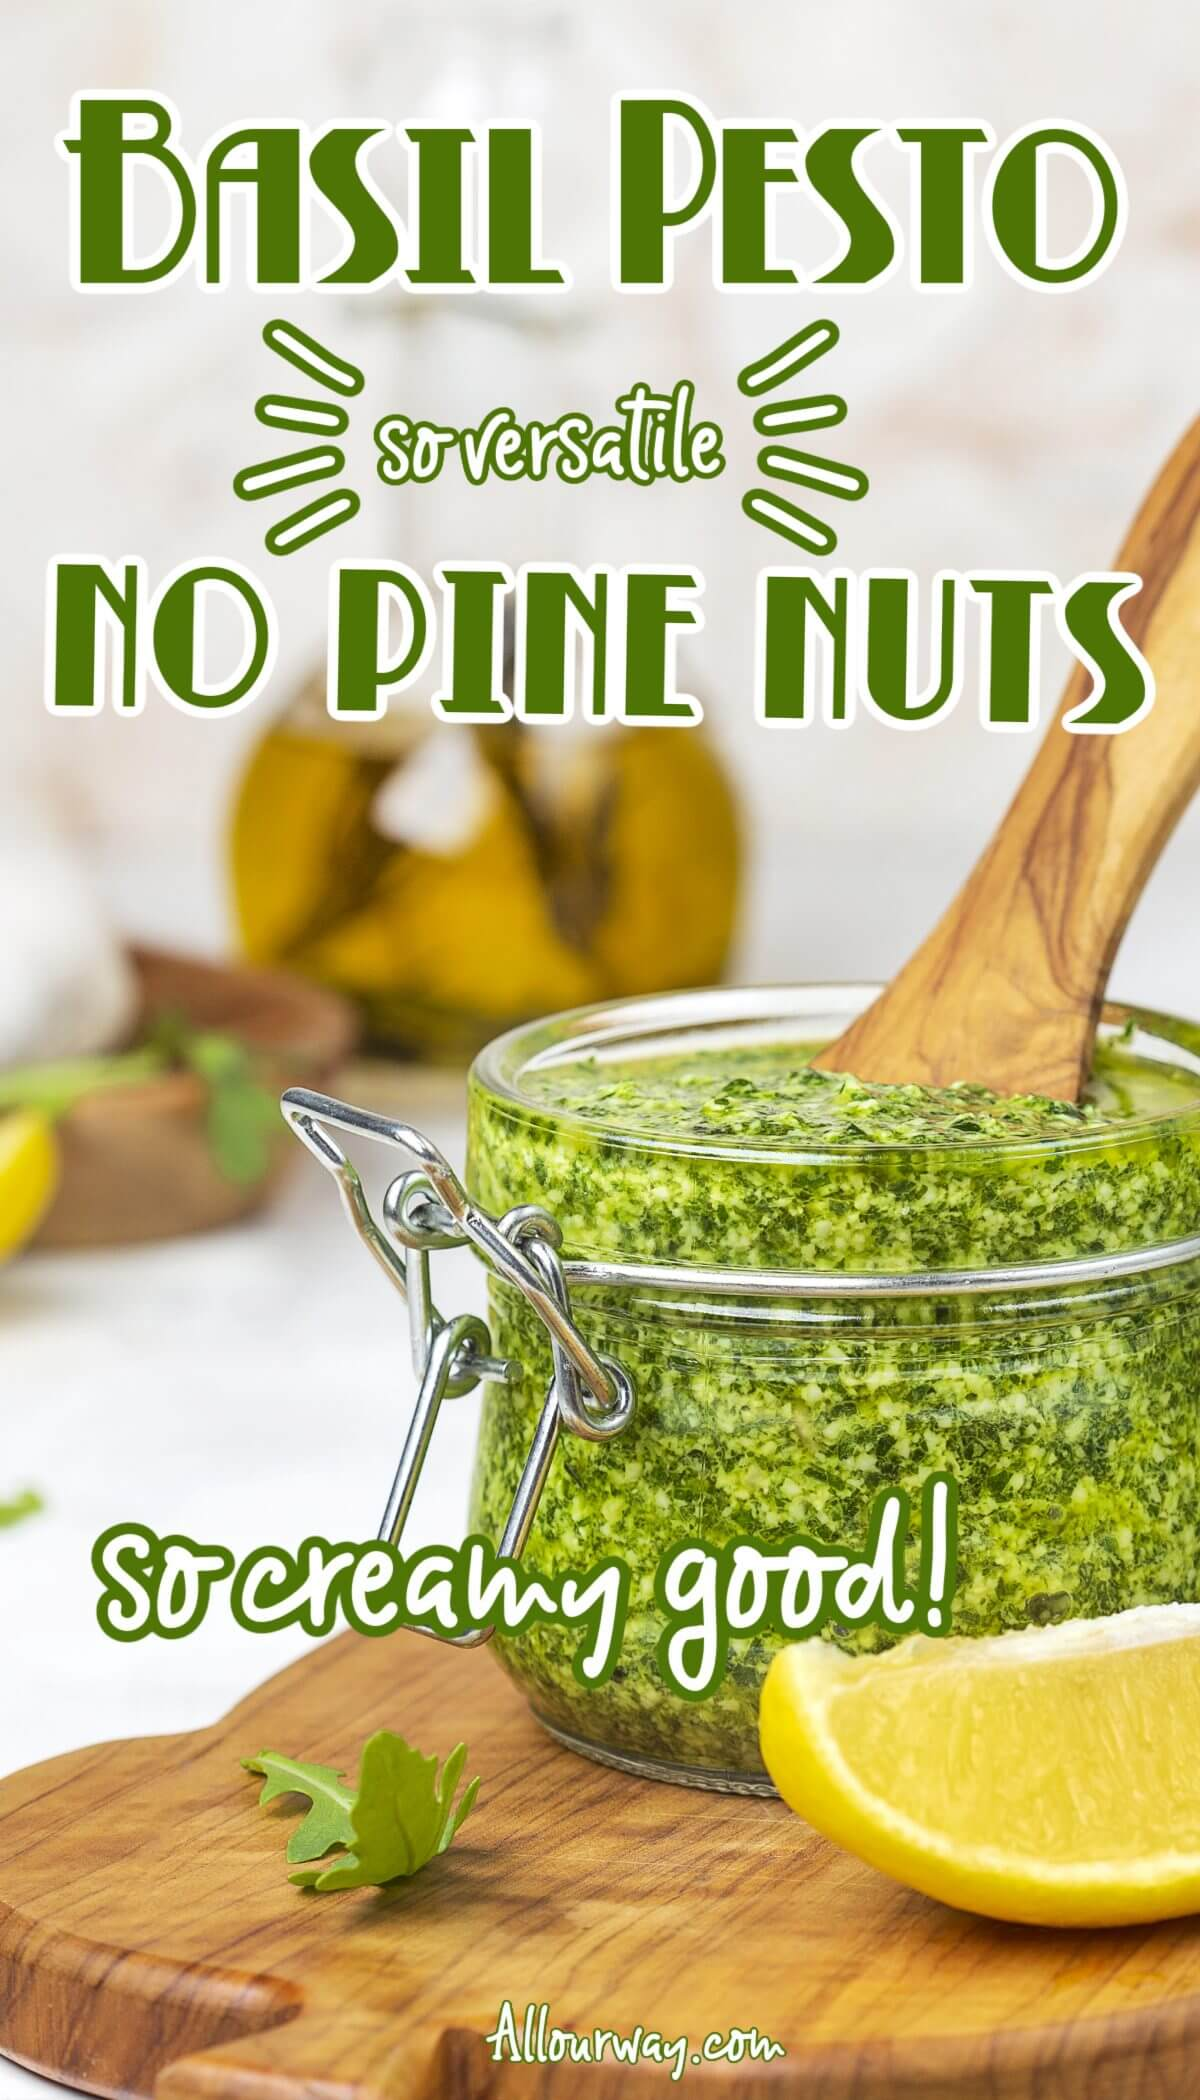 Homemade pesto without pine nuts can be a dip, sauce, or spread that pairs well with many flavors. Try mixing it with rice, risotto or mashed potatoes to see how much better the dish tastes. It is quick to make and versatile. We use walnuts so the pesto is also economical. Try making pesto with other greens - it will be a favorite condiment at your house.